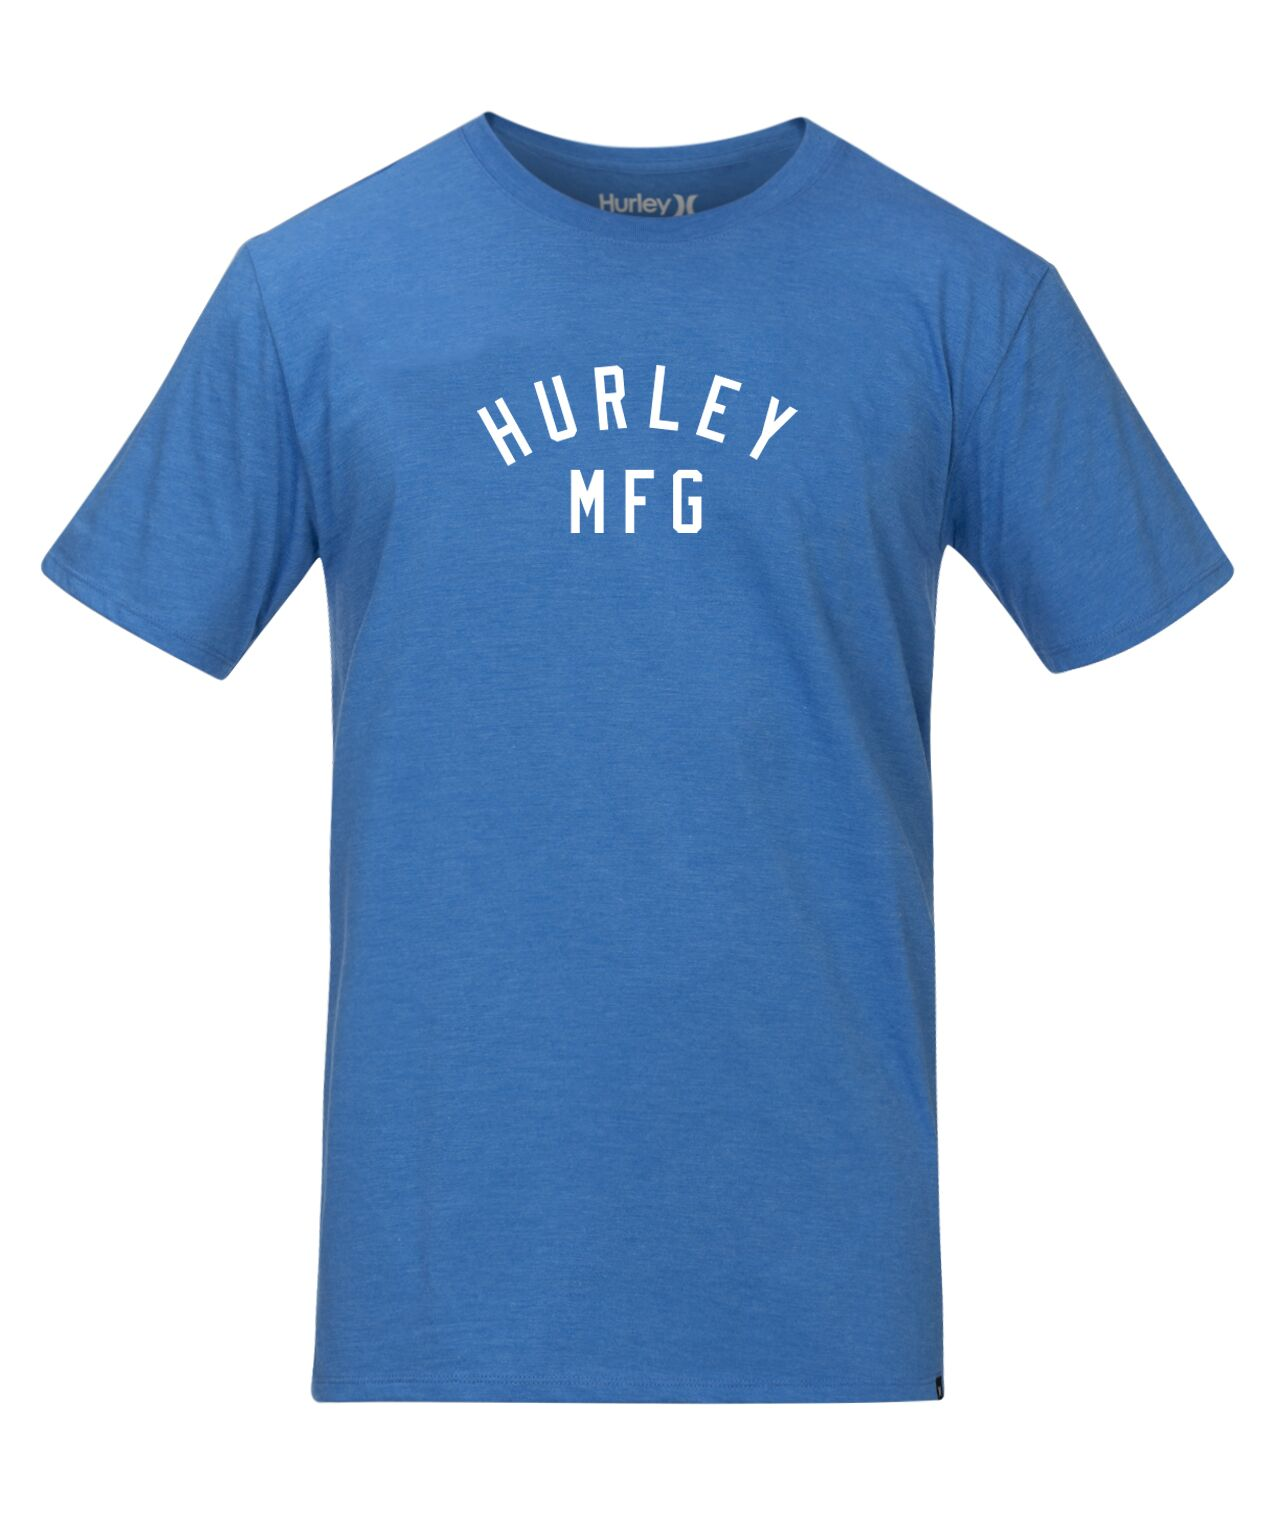 HURLEY MENS SIRO ATHLETICO BLUE TSHIRT